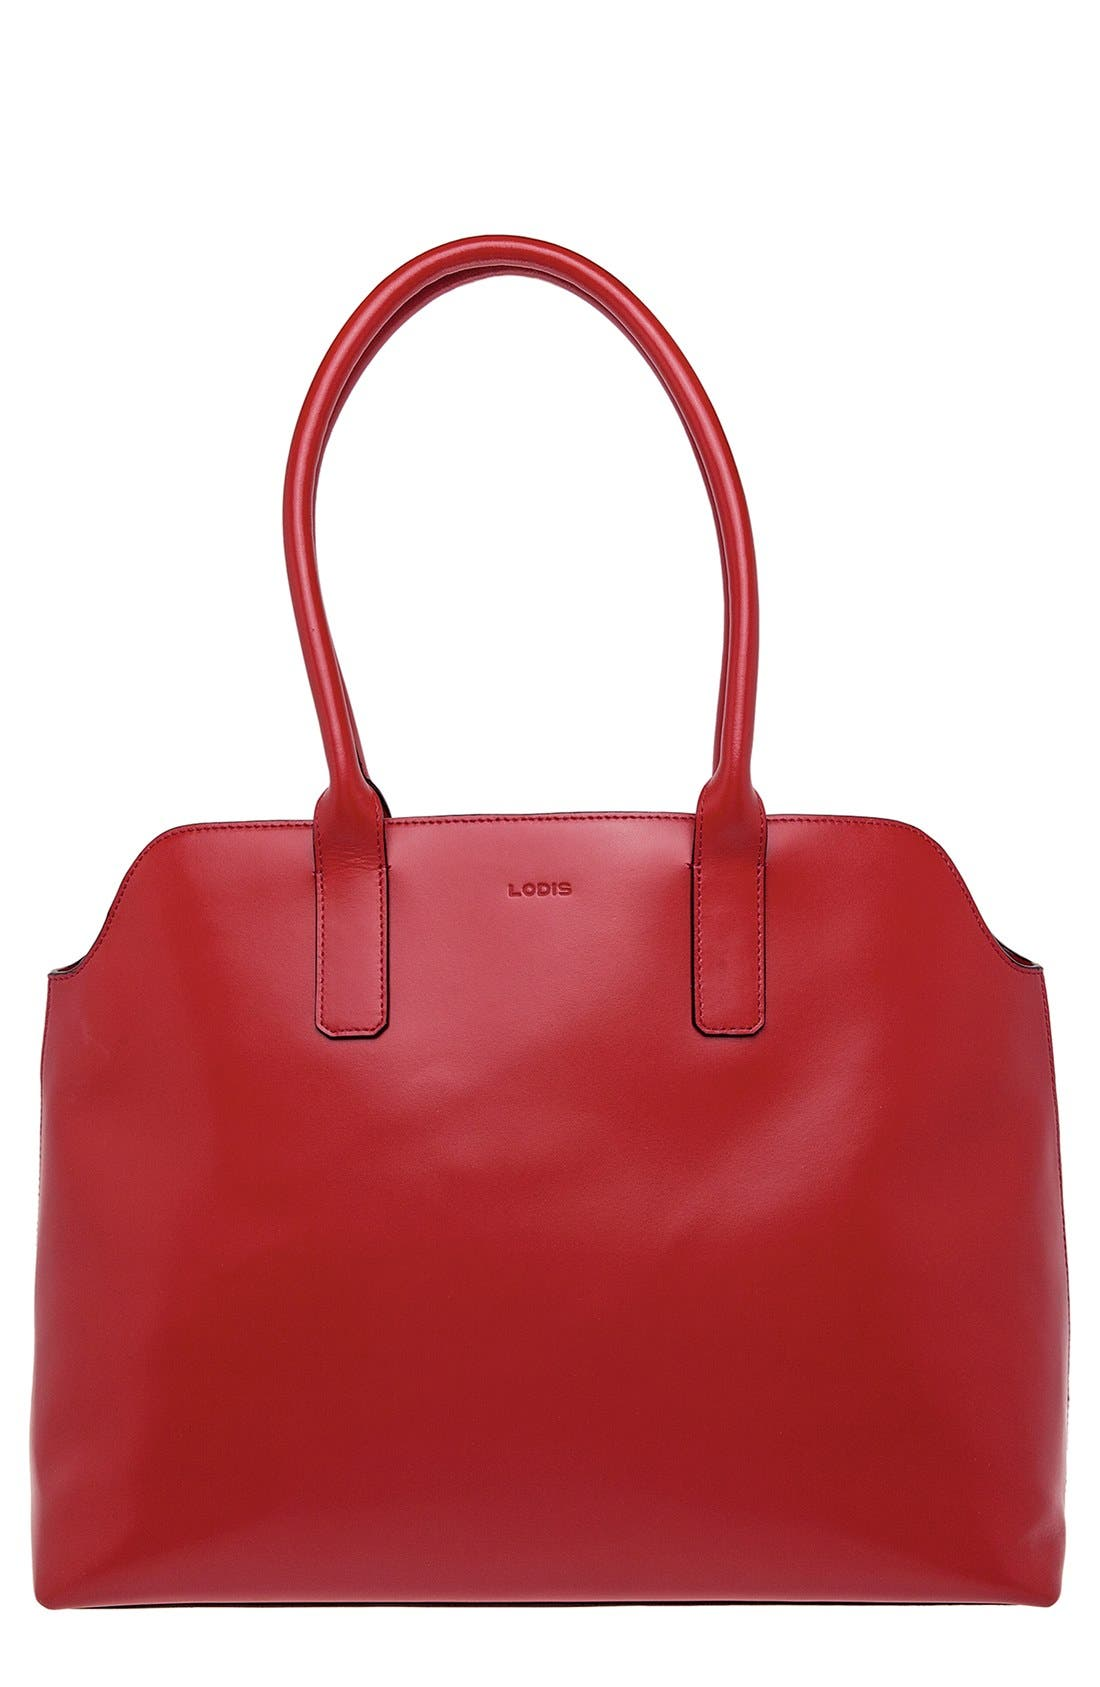 Main Image - Lodis 'Audrey Collection - Ivana' Tote